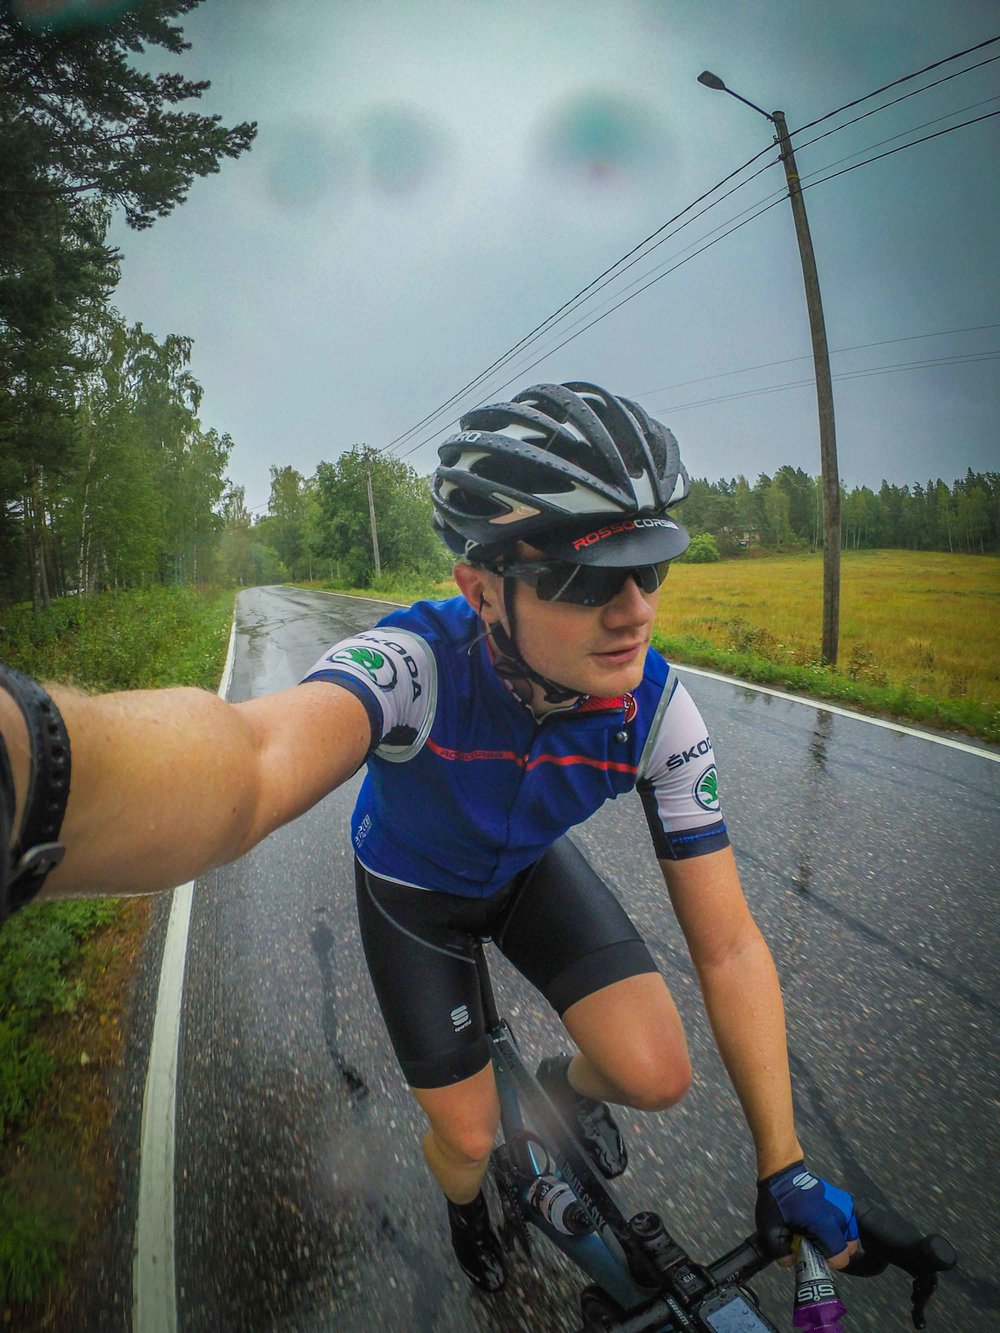 Rainy rides with already added layers of clothing.